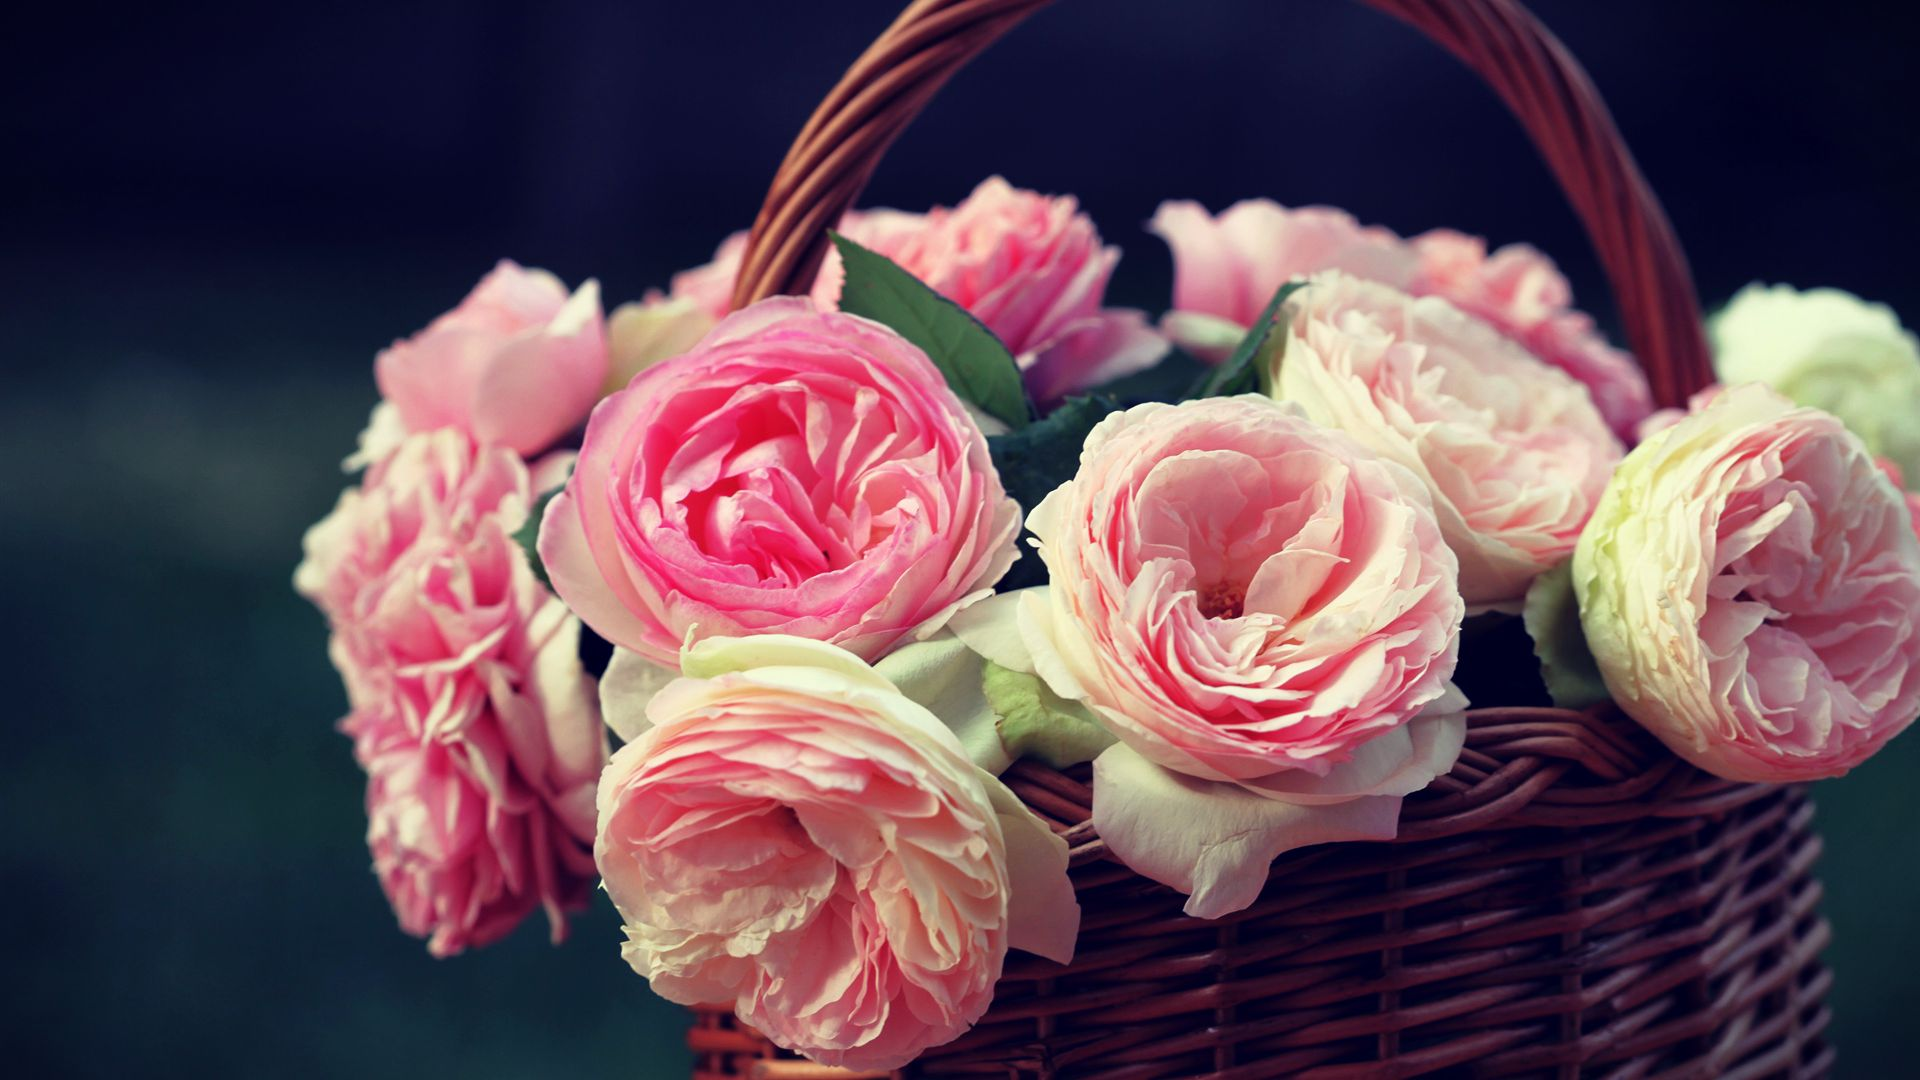 beautiful roses - wallpaper, high definition, high quality, widescreen